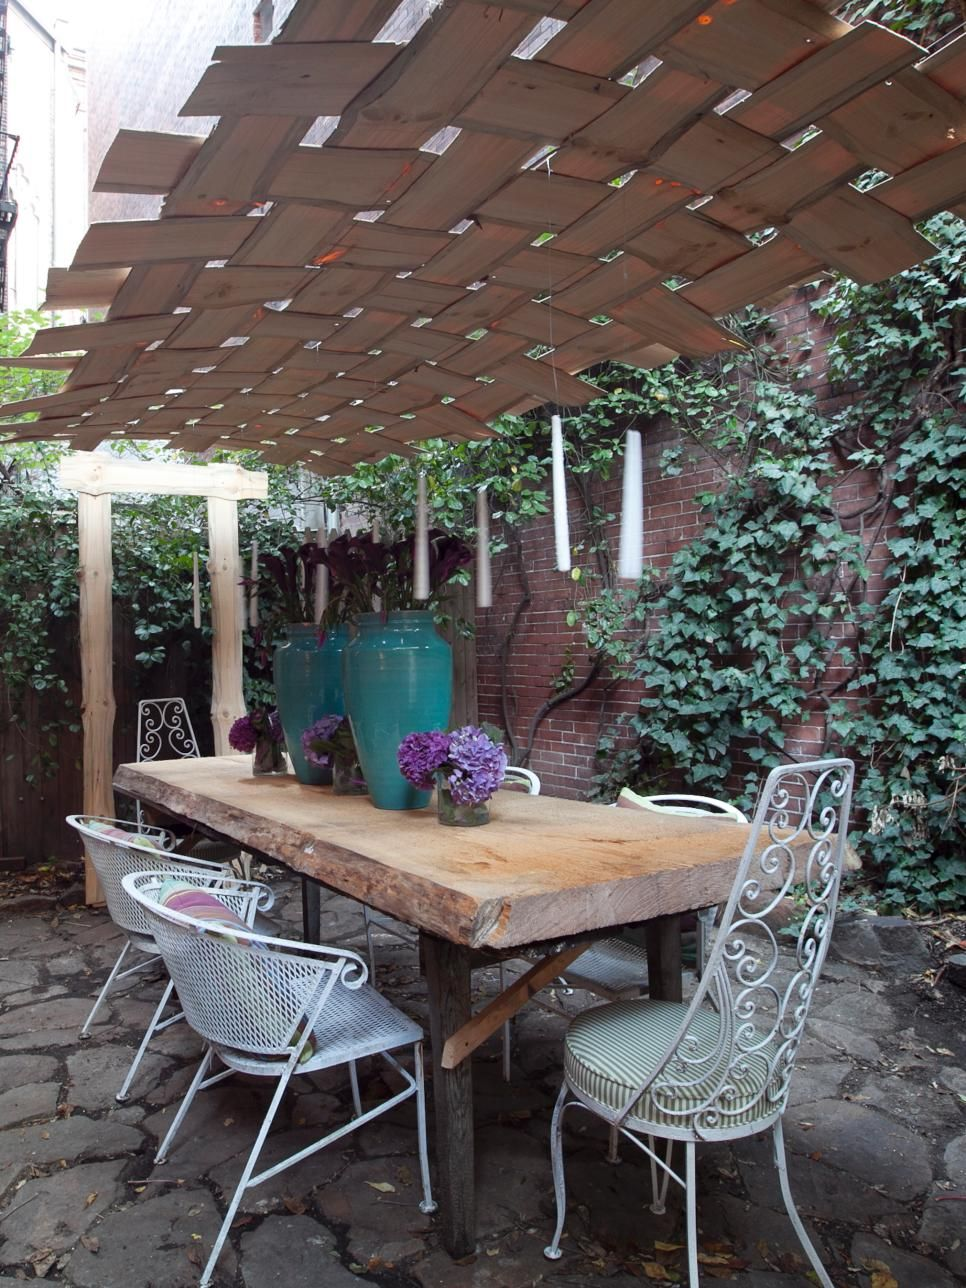 10 creative diy outdoor shady space ideas - Outdoor Canopies